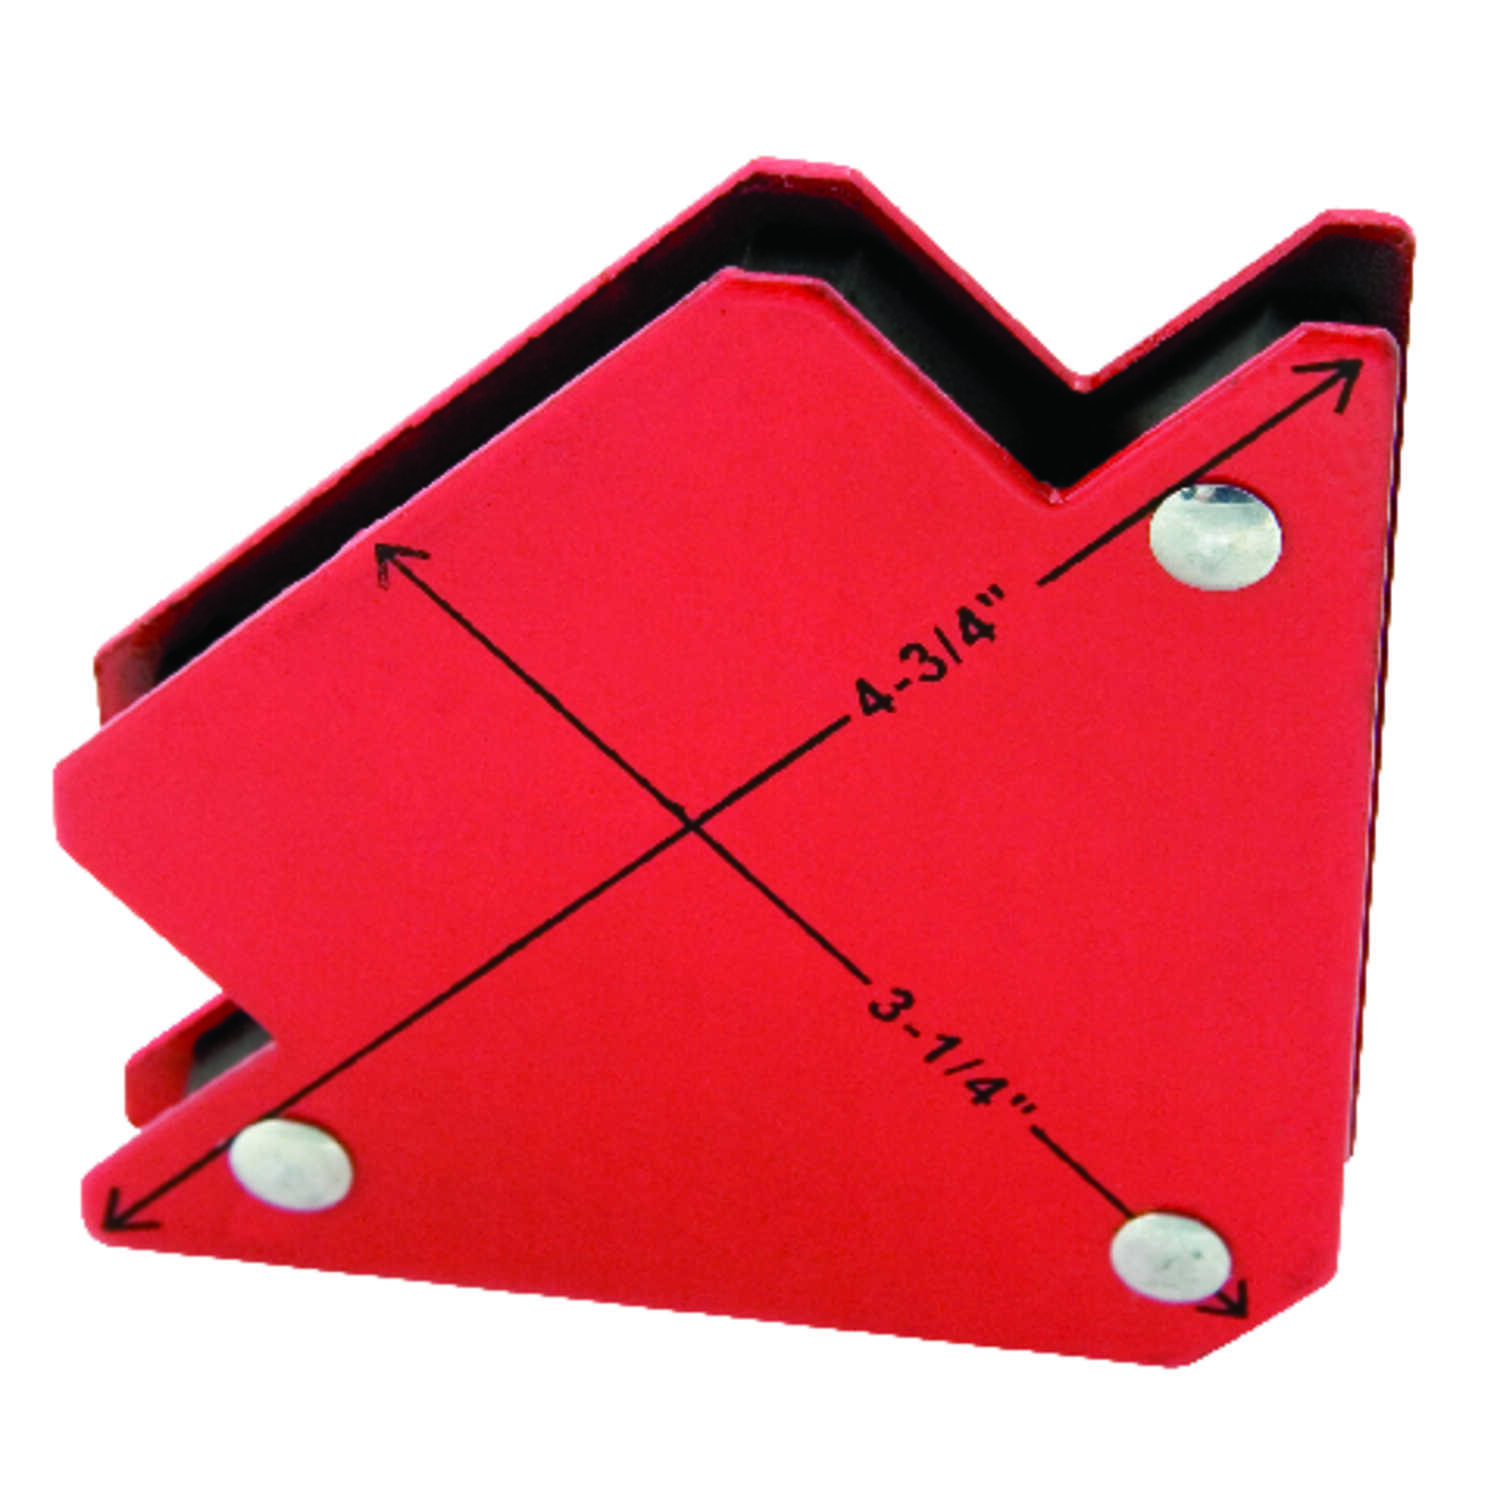 Forney  Metal  Medium  Magnetic Jig  6 in. to 6 in. Red  1 pc.